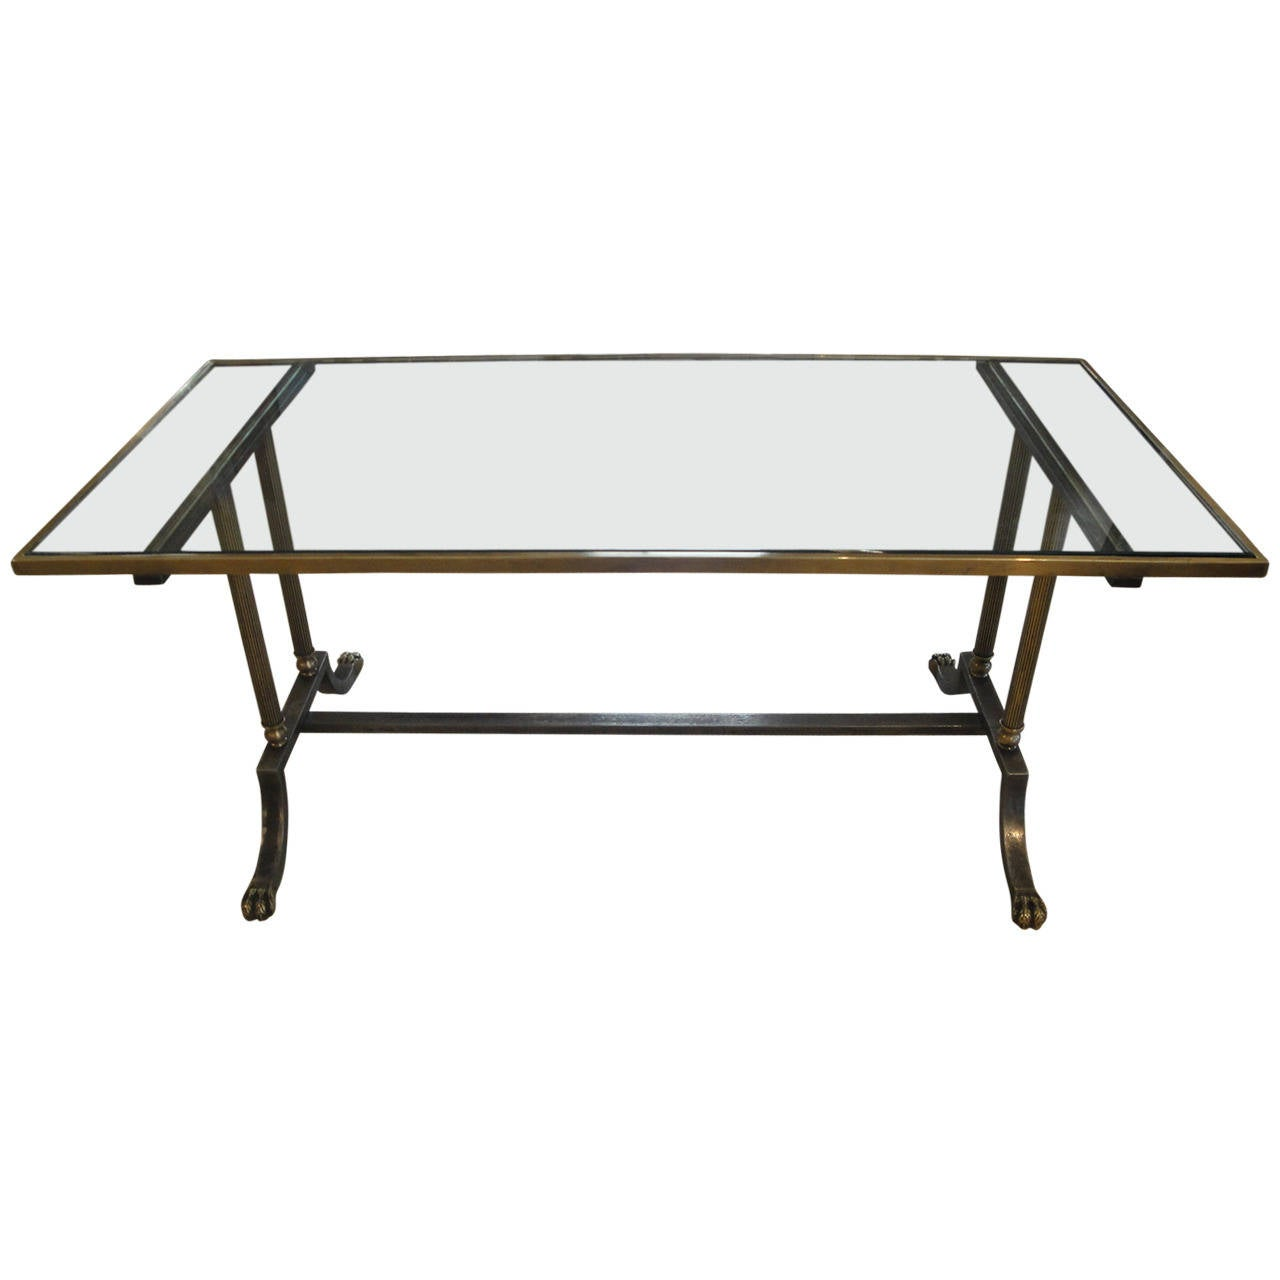 Maison Jansen Coffee Table In Brass And Steel At 1stdibs